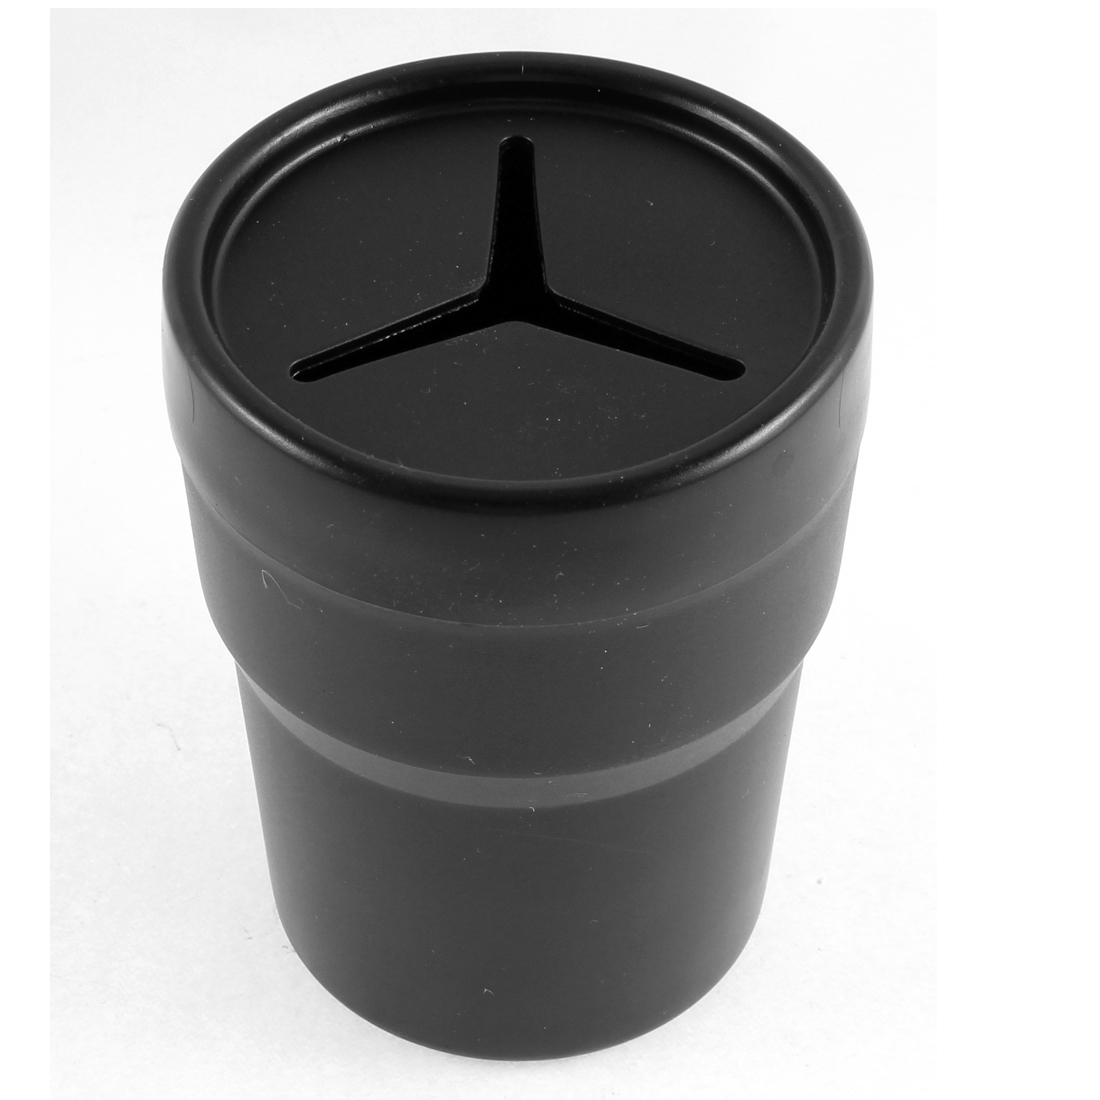 Black Plastic Soft PVC Pen Coin Trash Bin Box Container Storage for Car